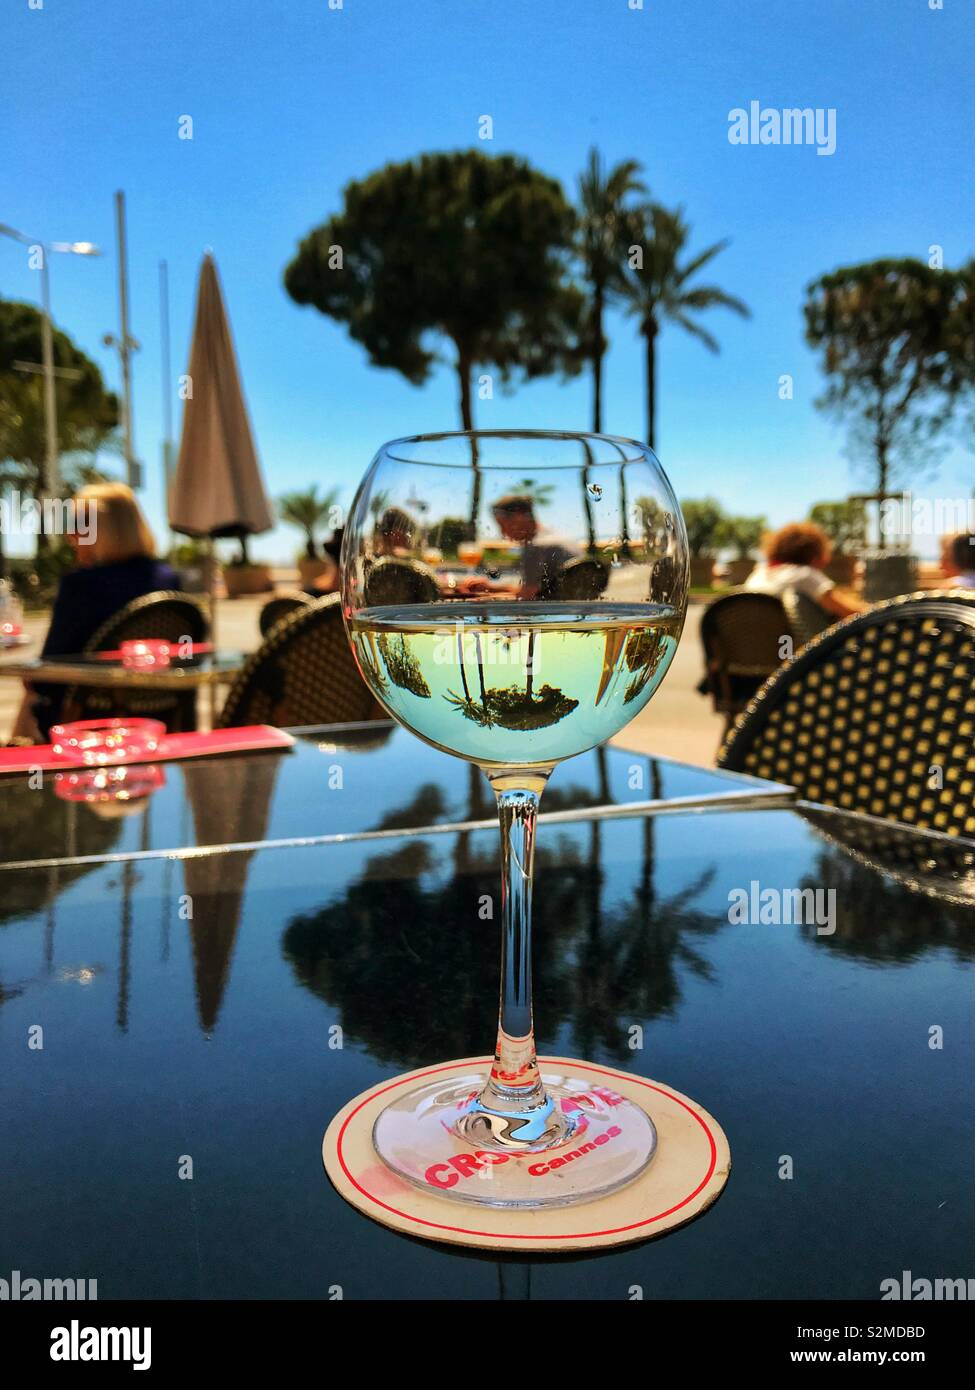 Glass of white wine on a table at a seafront restaurant in Cannes, France Stock Photo